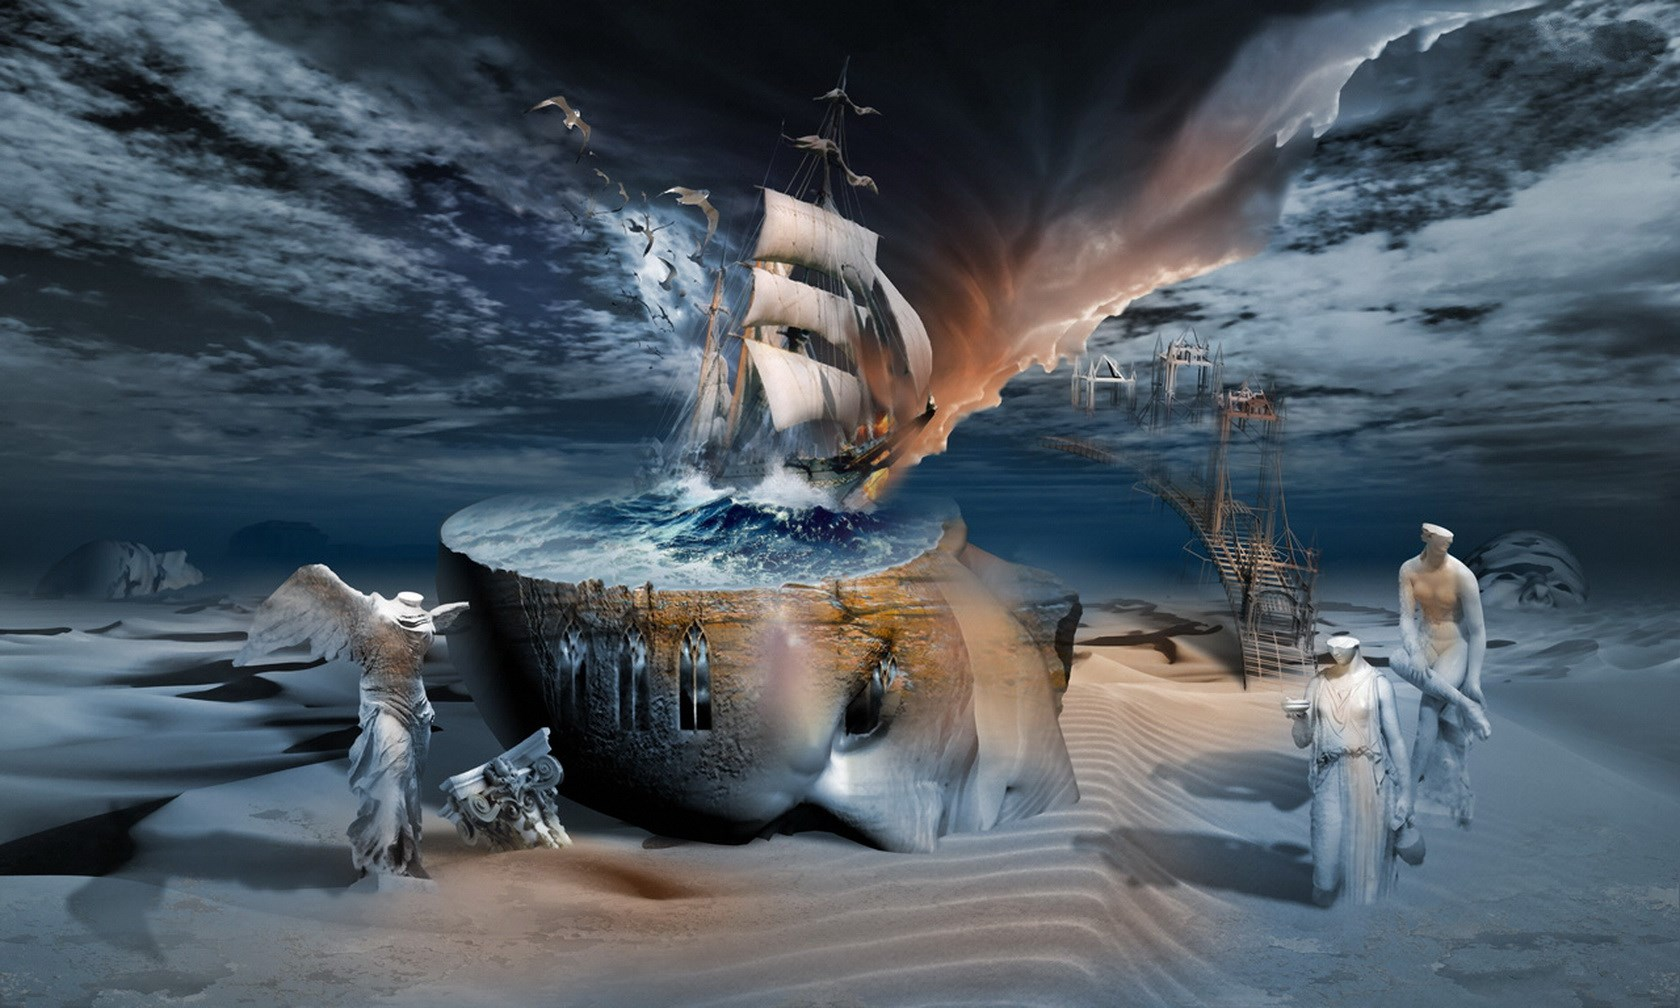 Cannon-Black-Free-desktop-manipulation-x-px-wallpaper-wp3603901